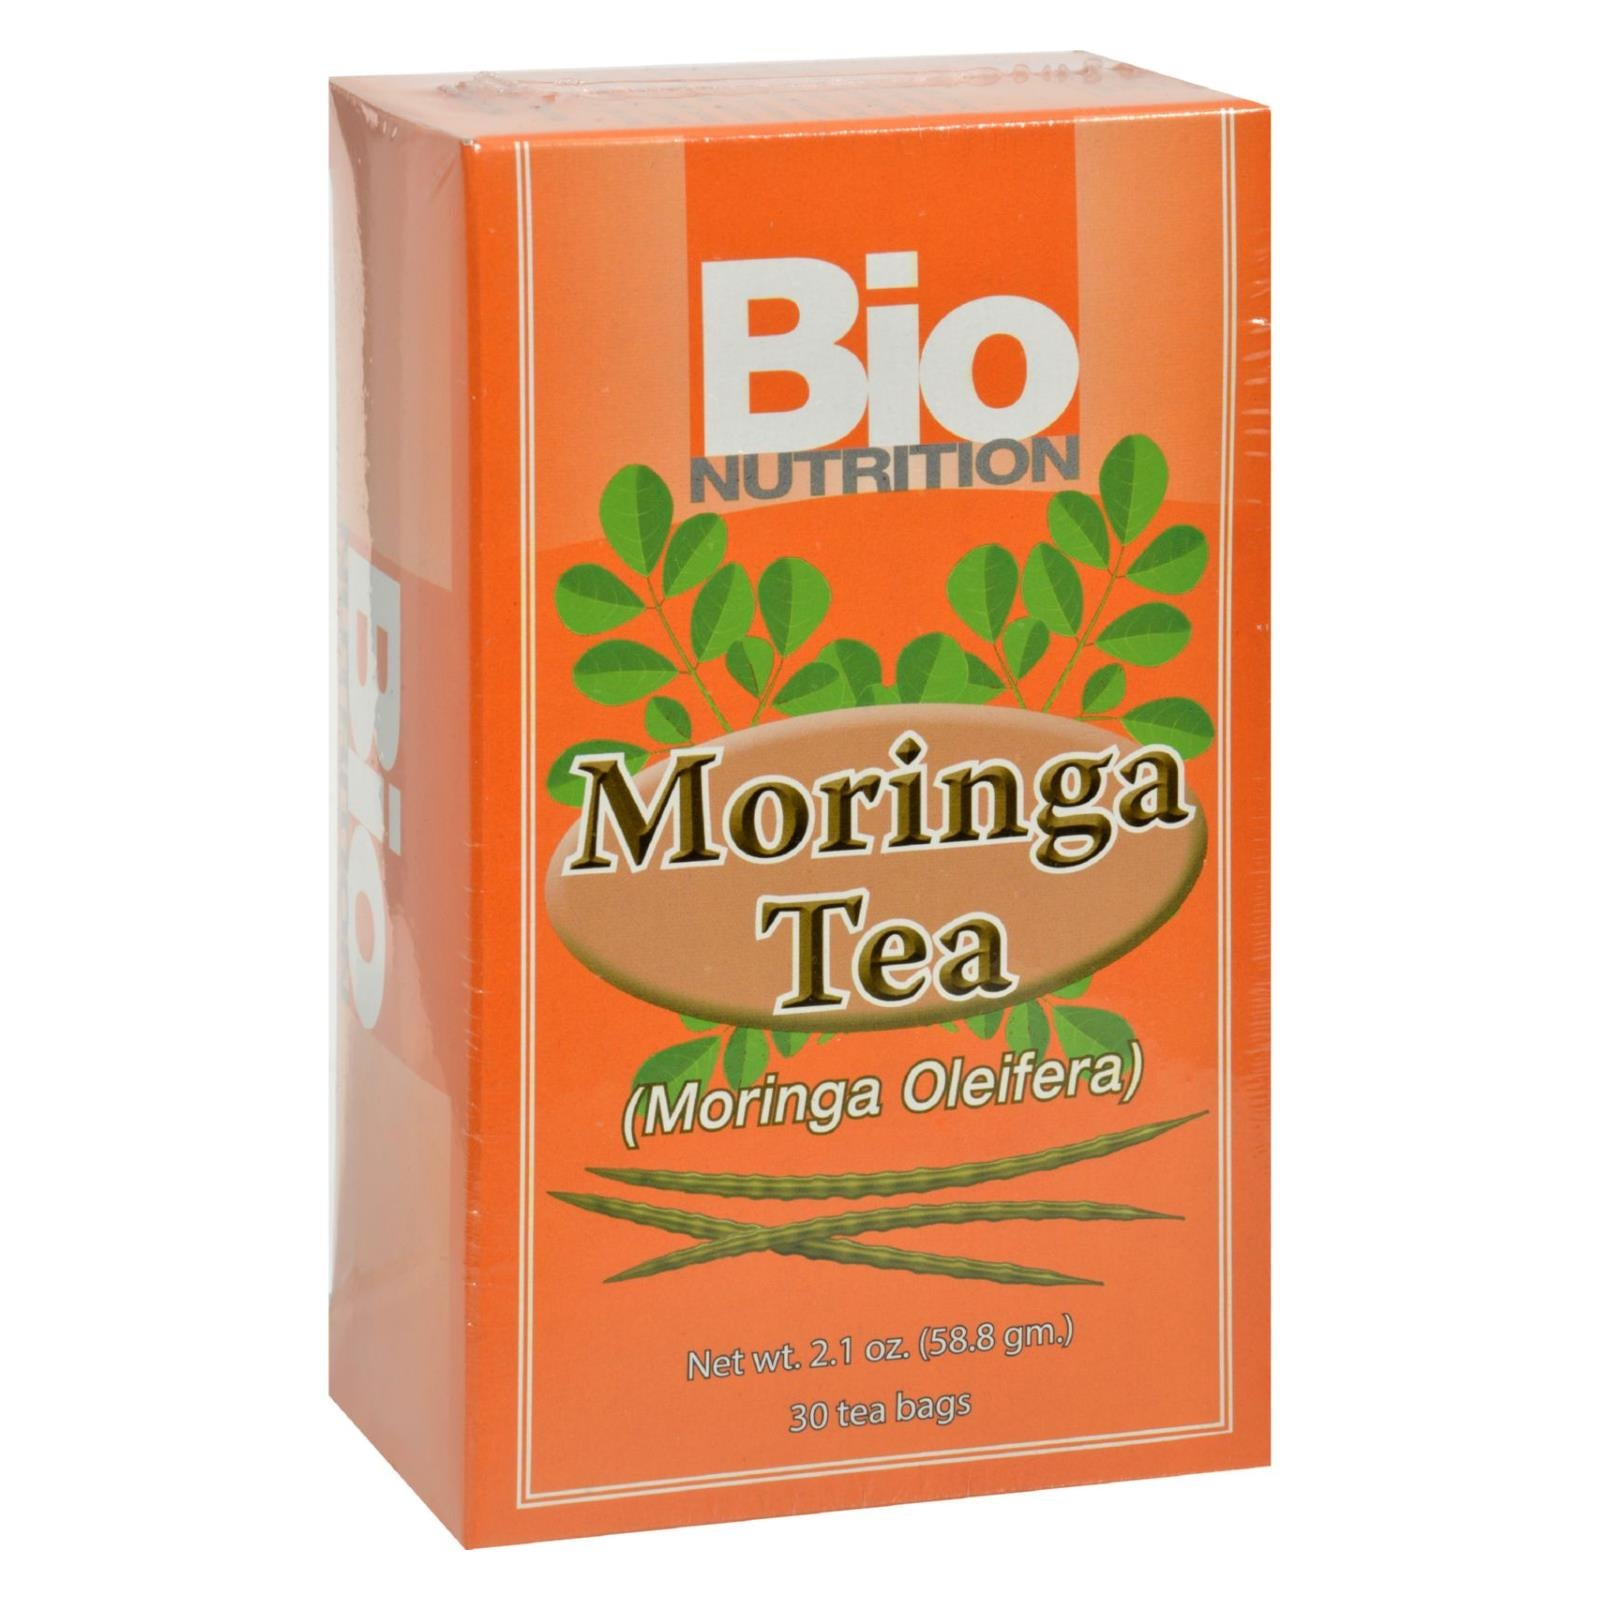 Buy Bio Nutrition Tea - Moringa - 30 count - Wellness Tea from Veroeco.com